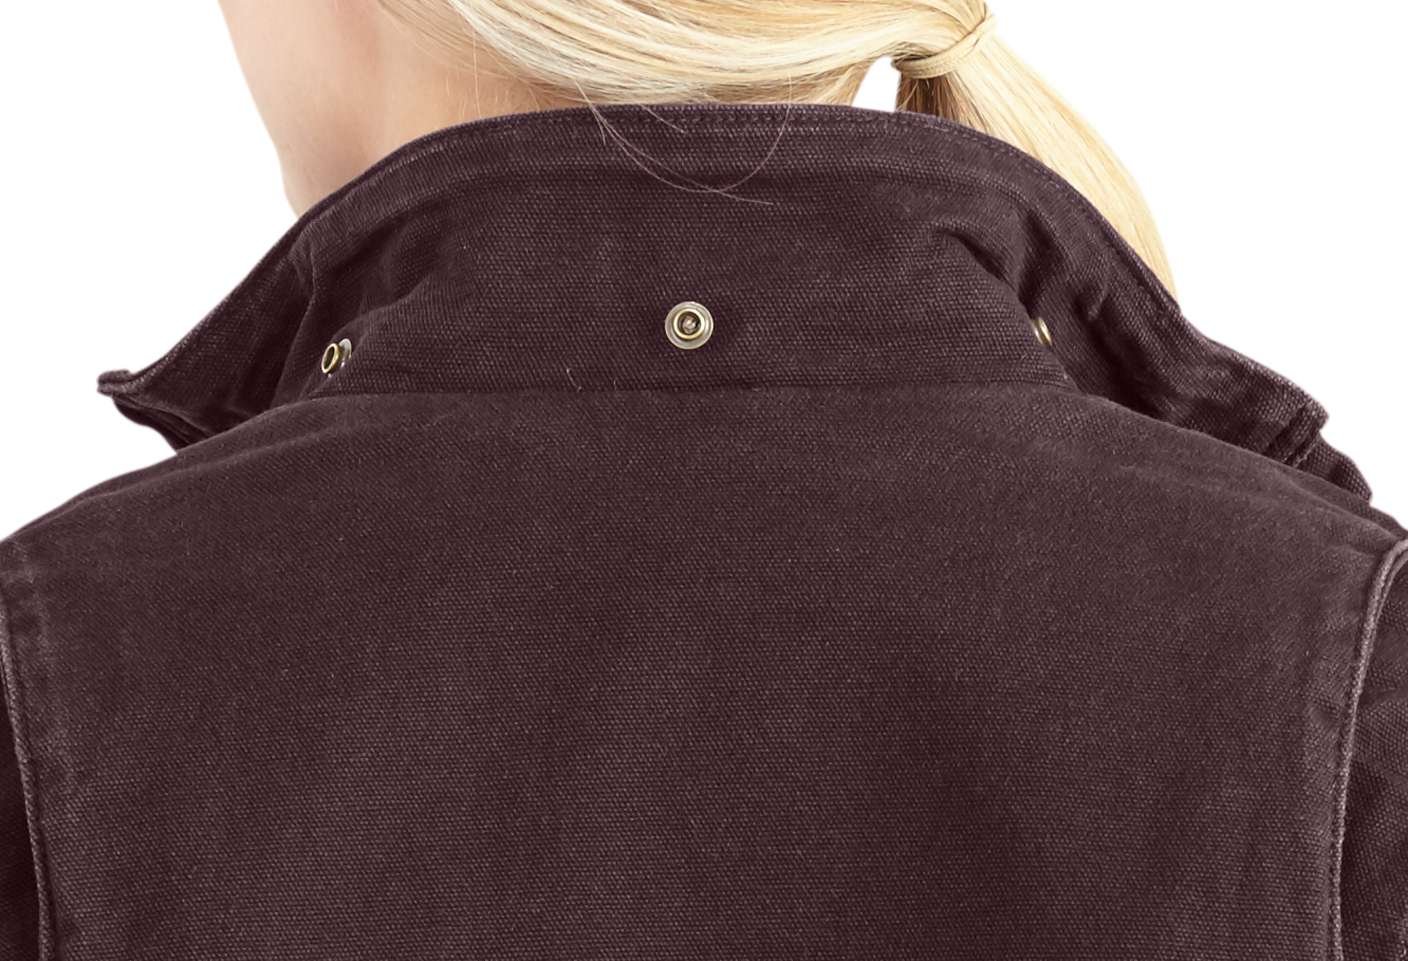 Detachable, adjustable sherpa-lined hood adds warmth